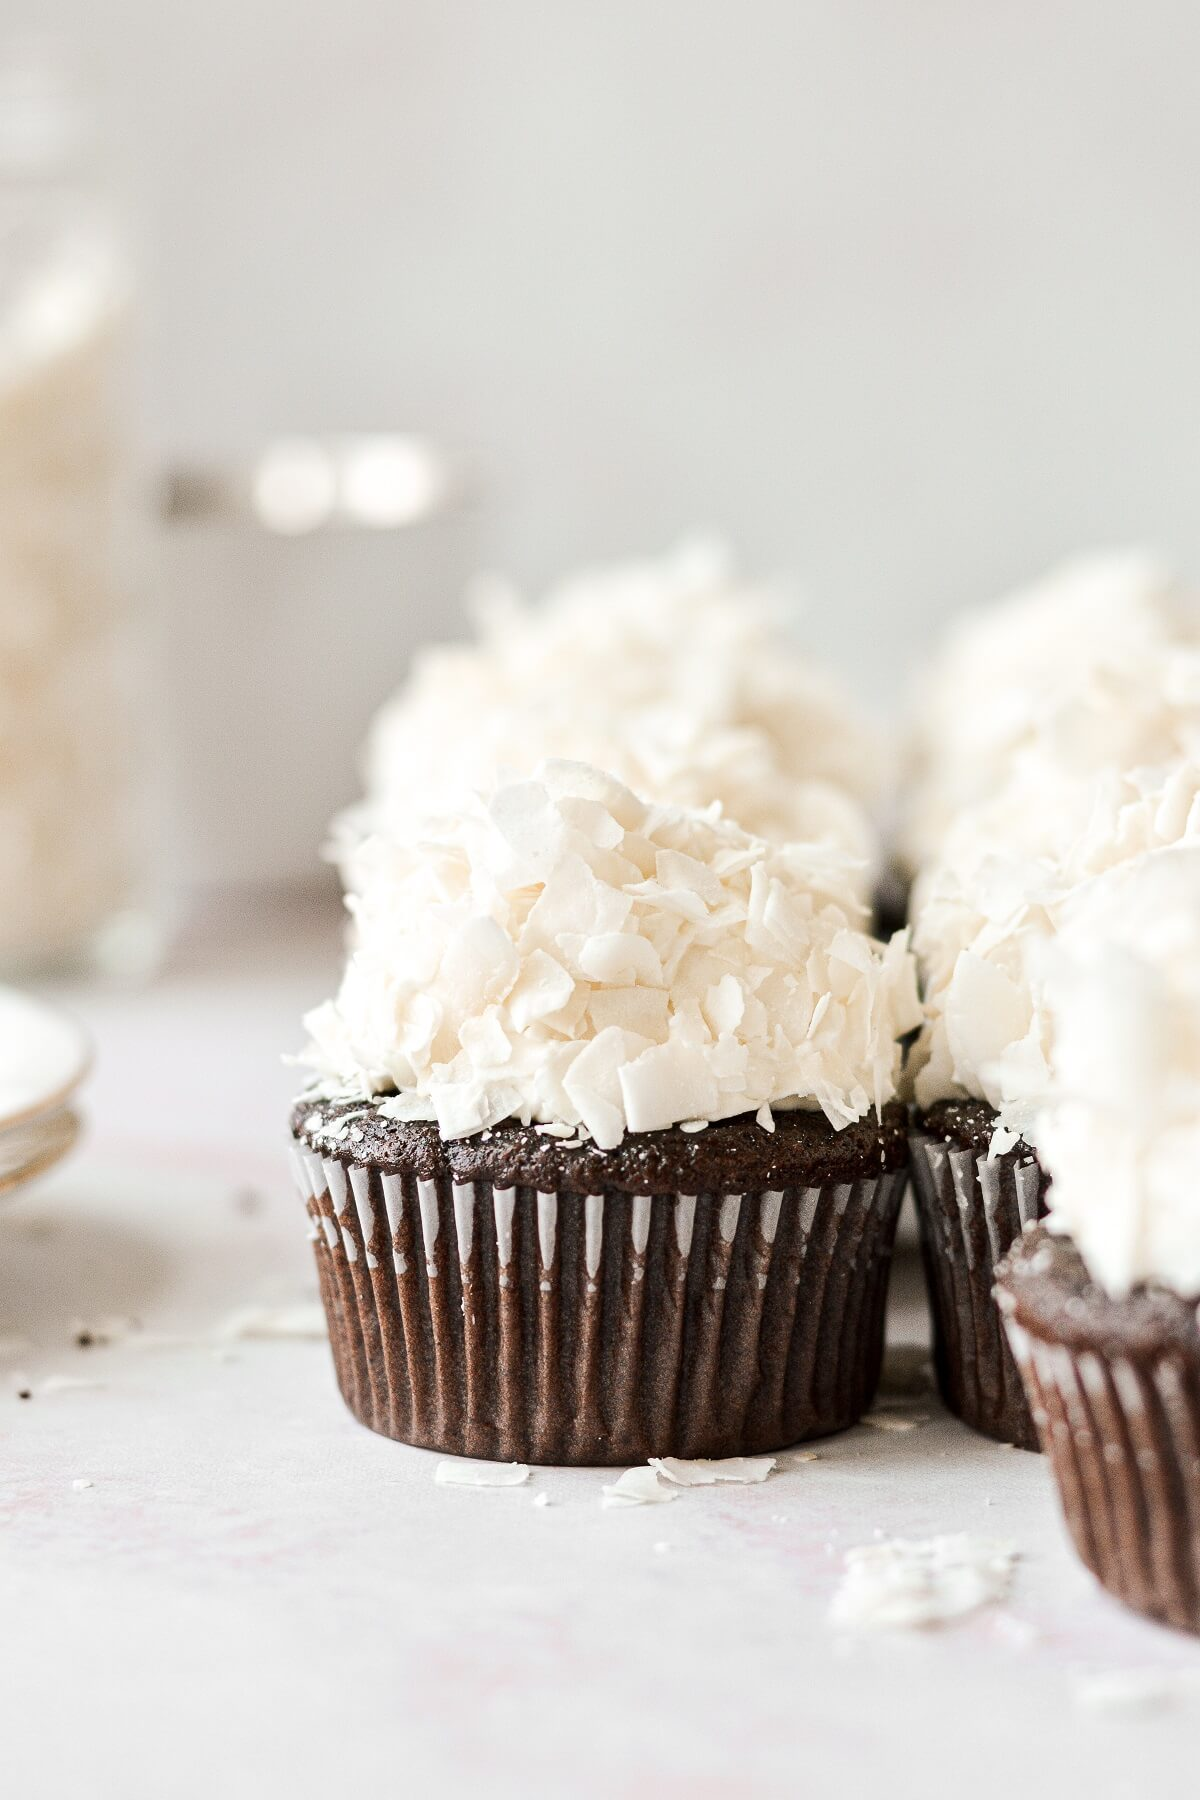 Chocolate cupcakes with coconut frosting.